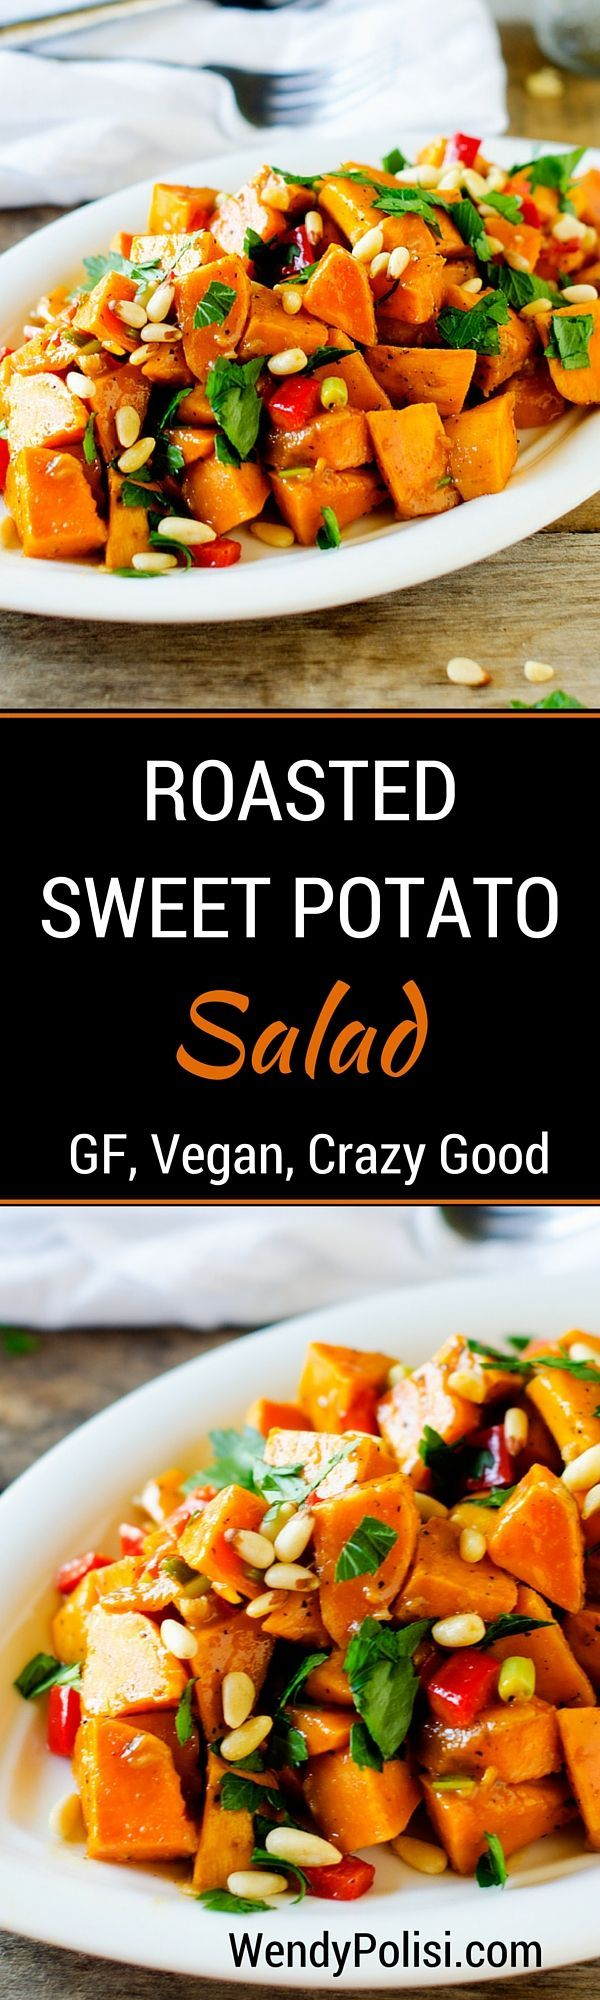 Roasted Sweet Potato Salad - This sweet potato salad is so easy to make and crazy delicious!  The type of dish to keep in the fridge to help keep your clean eating on track!